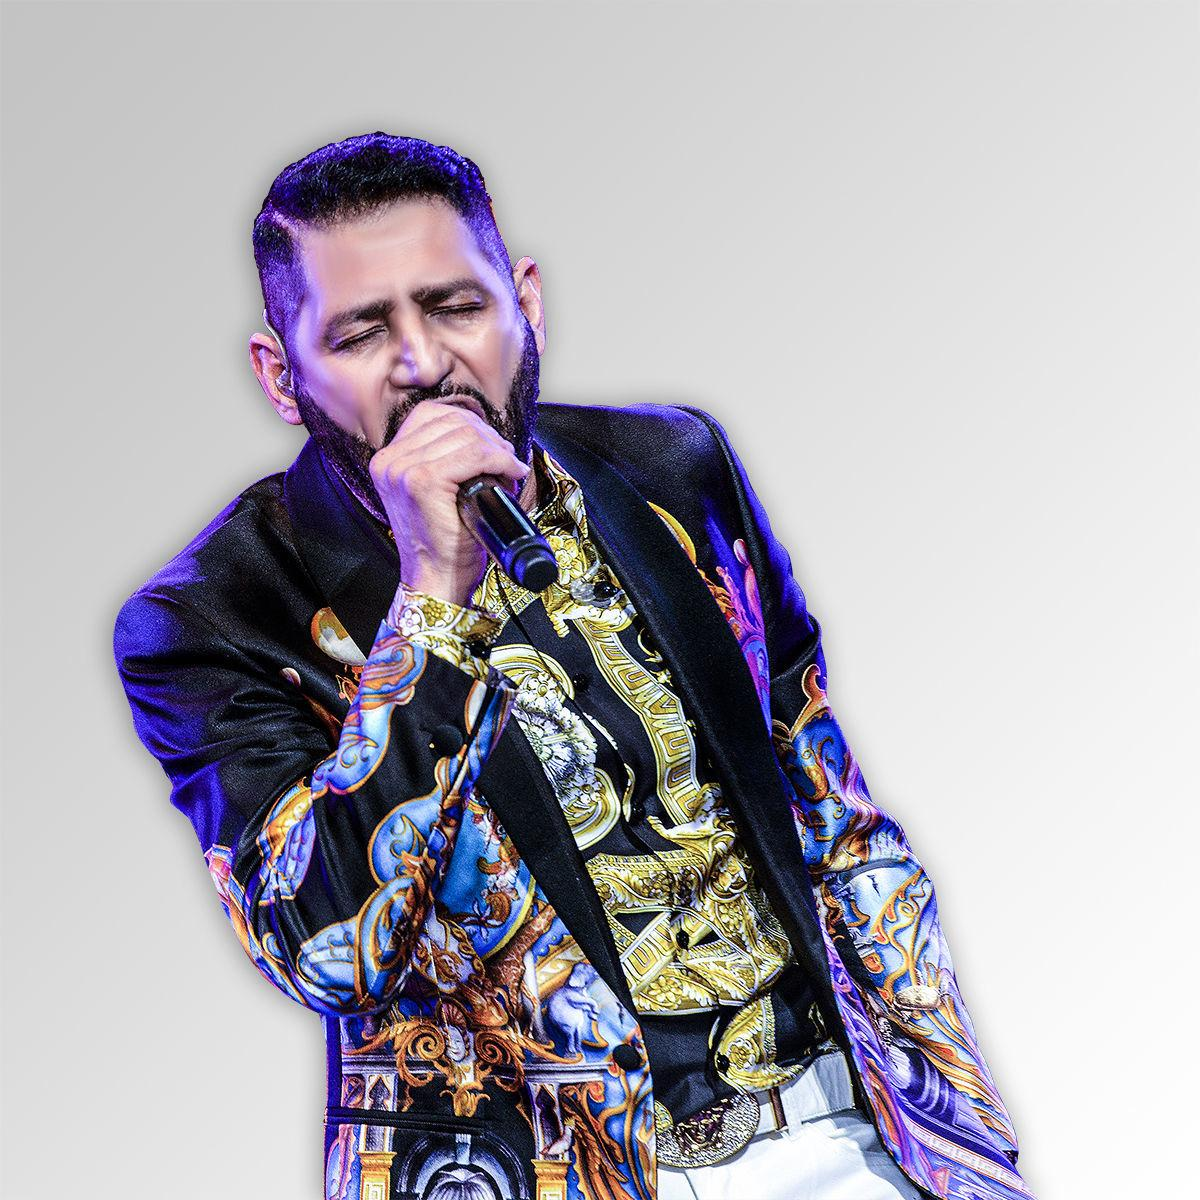 You Need To Go Pancho Barraza To Perform 2 Shows At